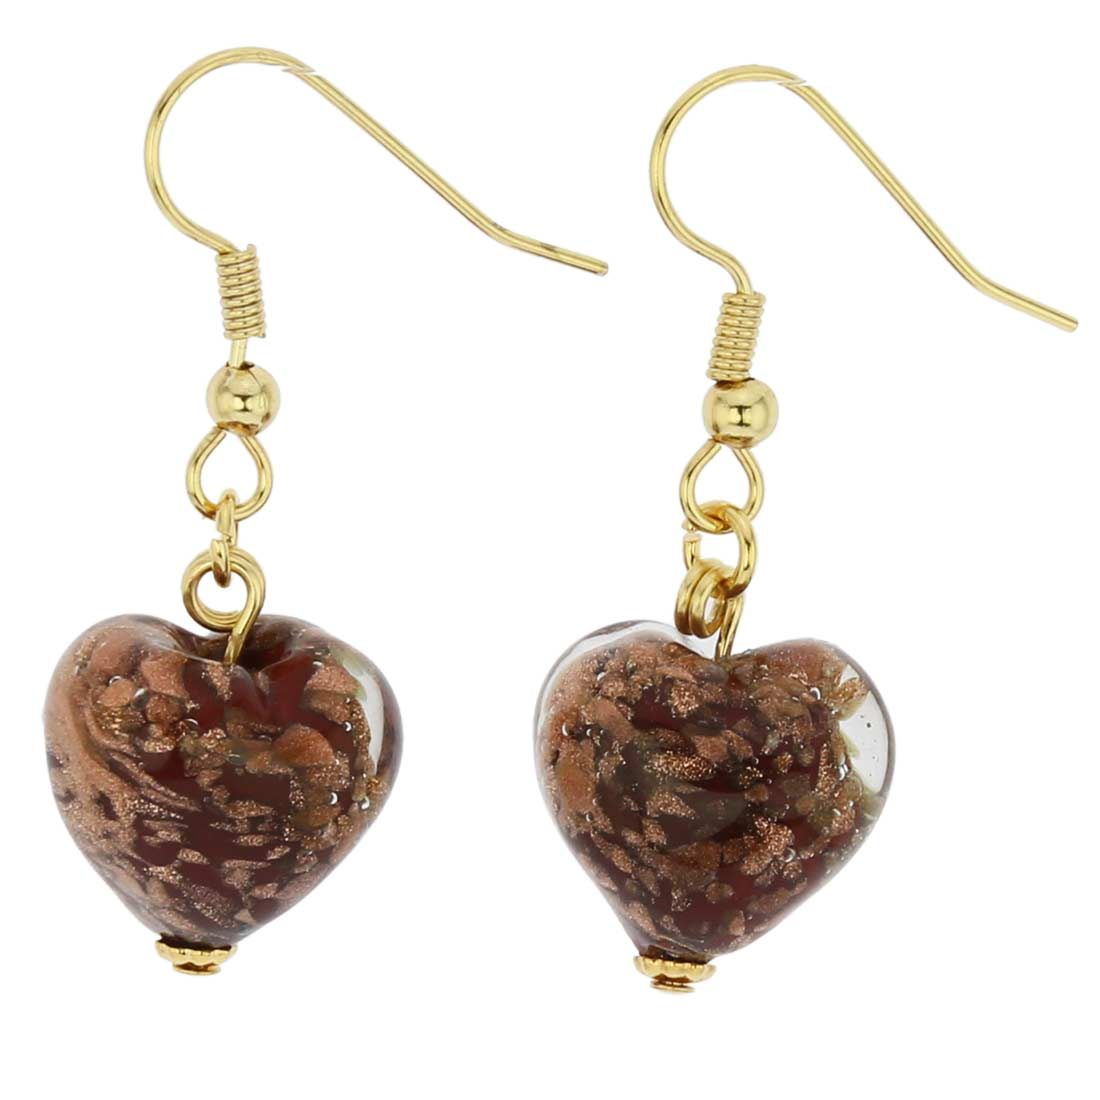 Starlight Hearts earrings - ruby red